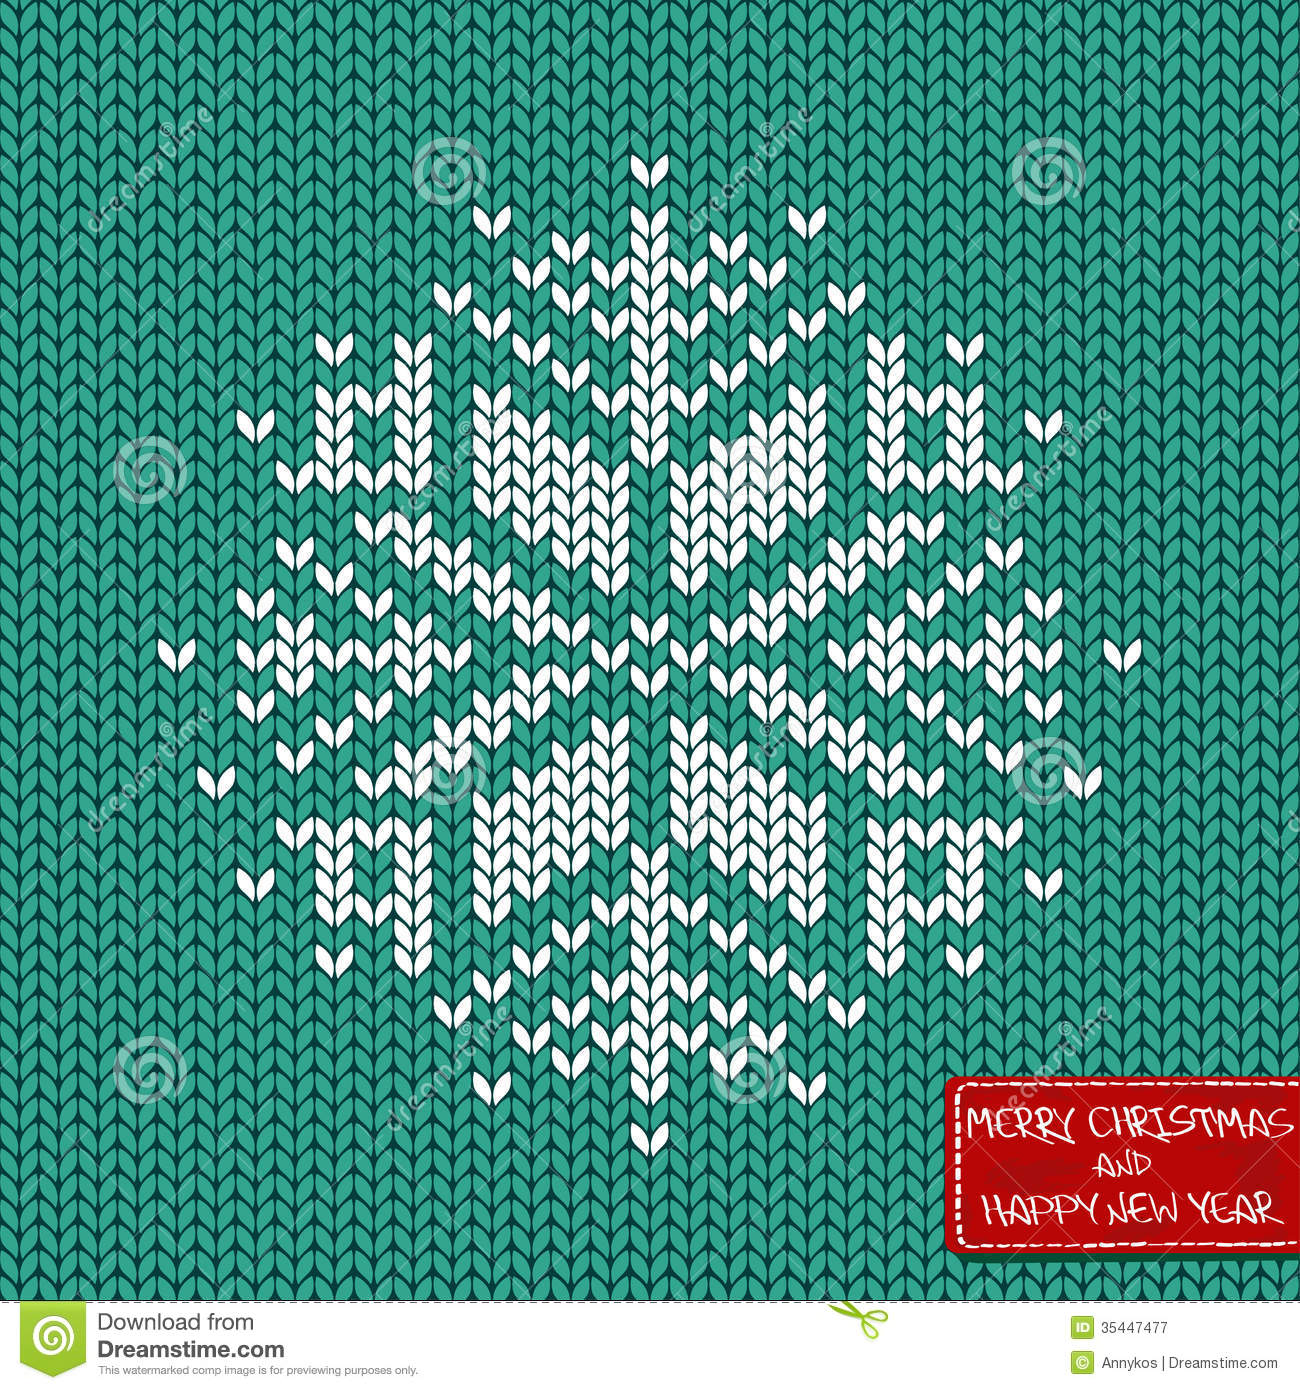 Knitted Snowflake Patterns : Christmas And New Year Knitted Seamless Pattern Or Card Royalty Free Stock Ph...